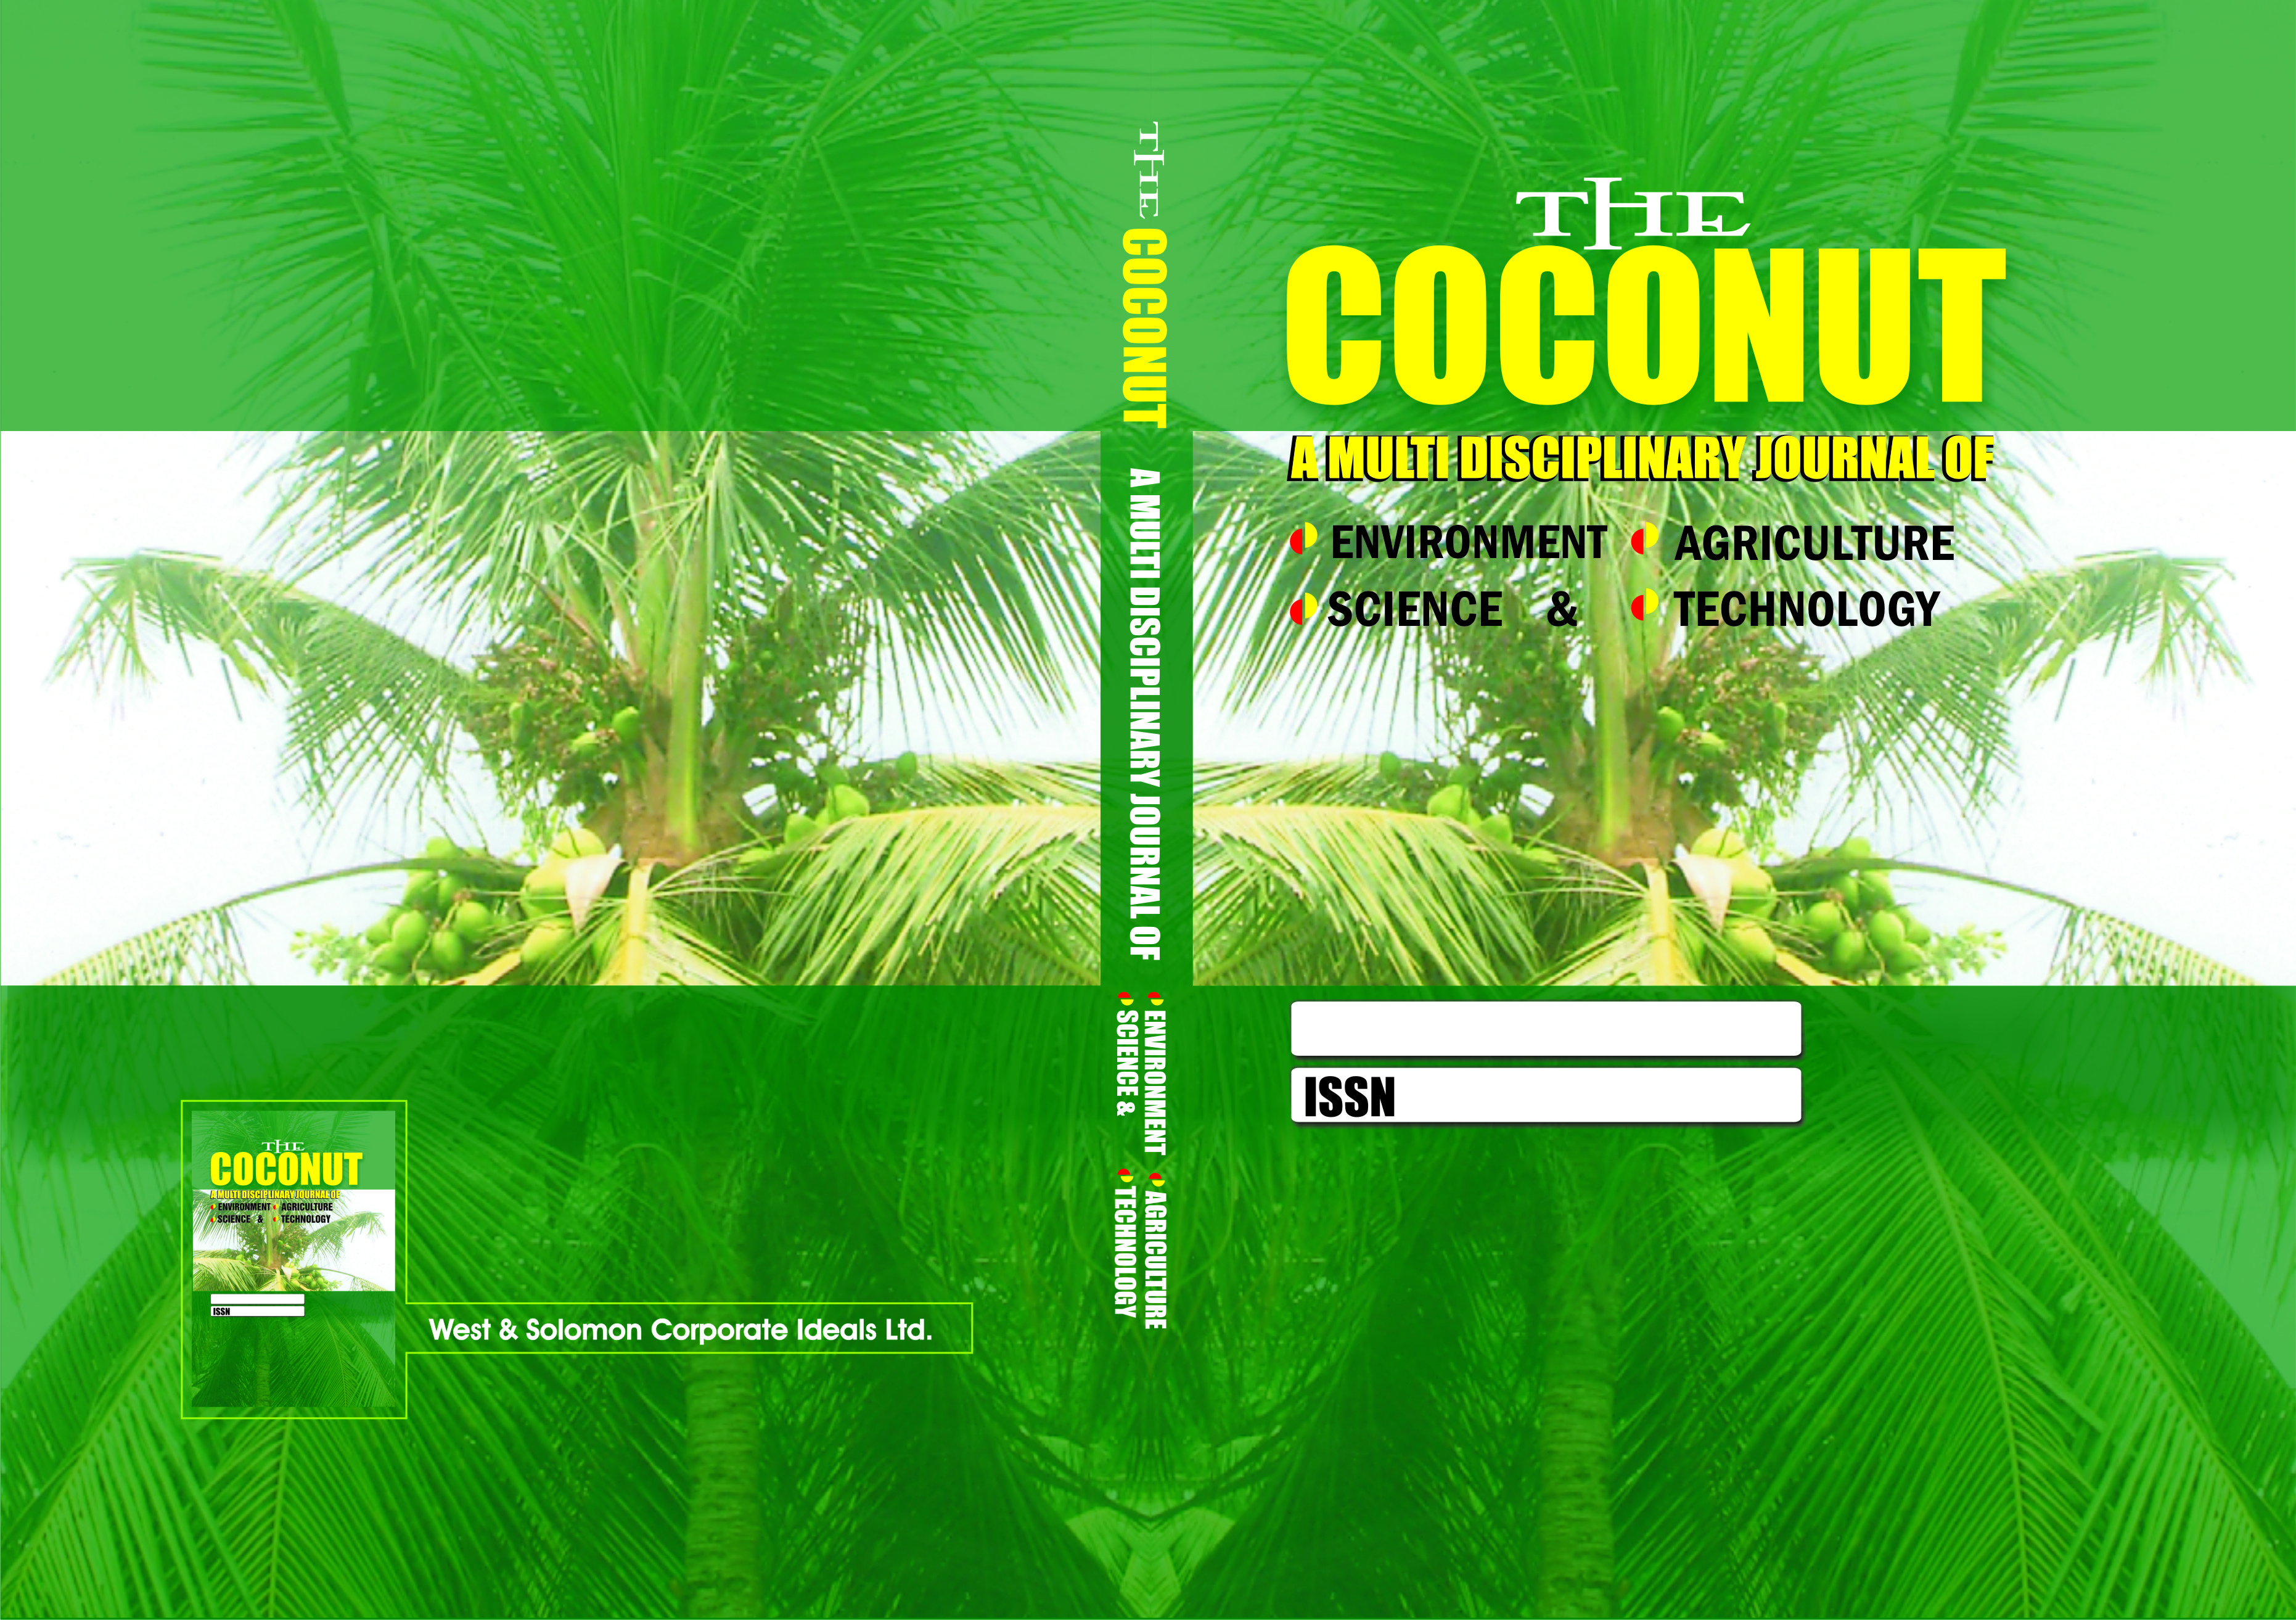 About Coconut